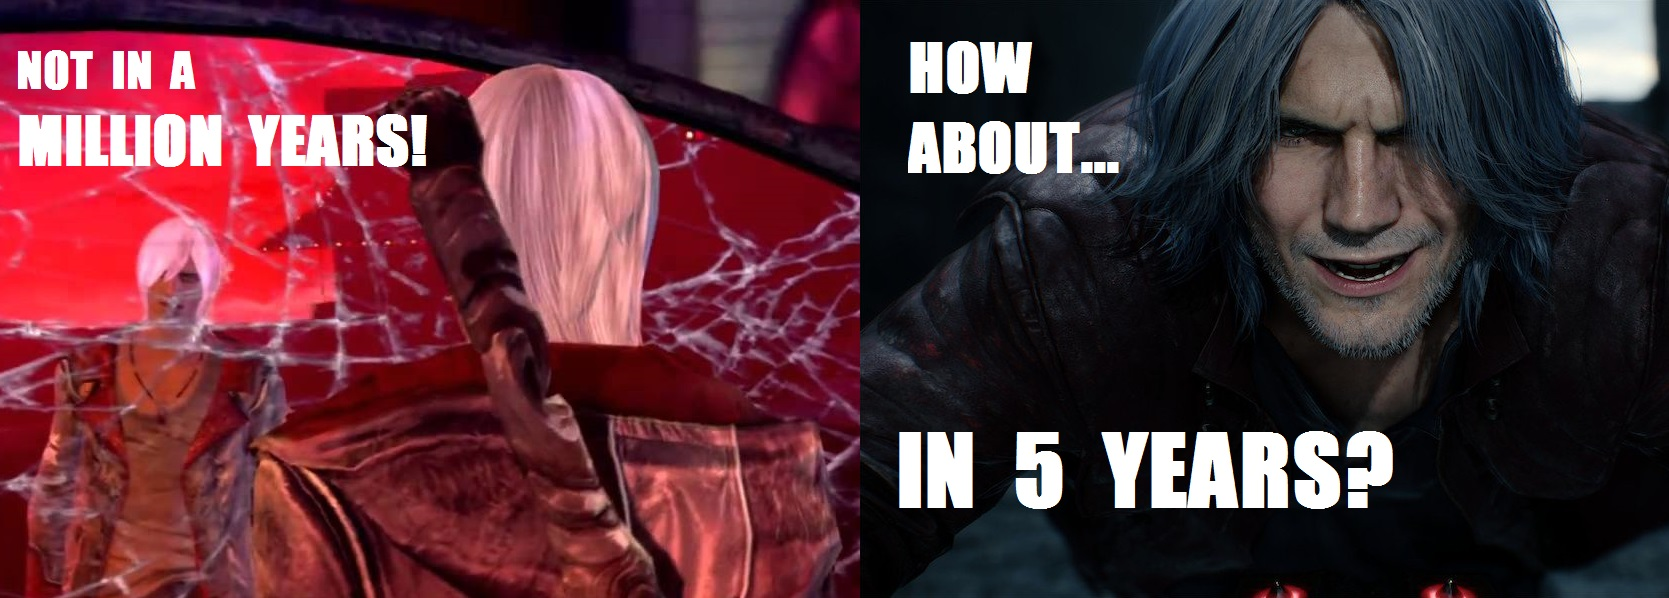 Devil May Cry Meme By Pituudmc01 On Deviantart